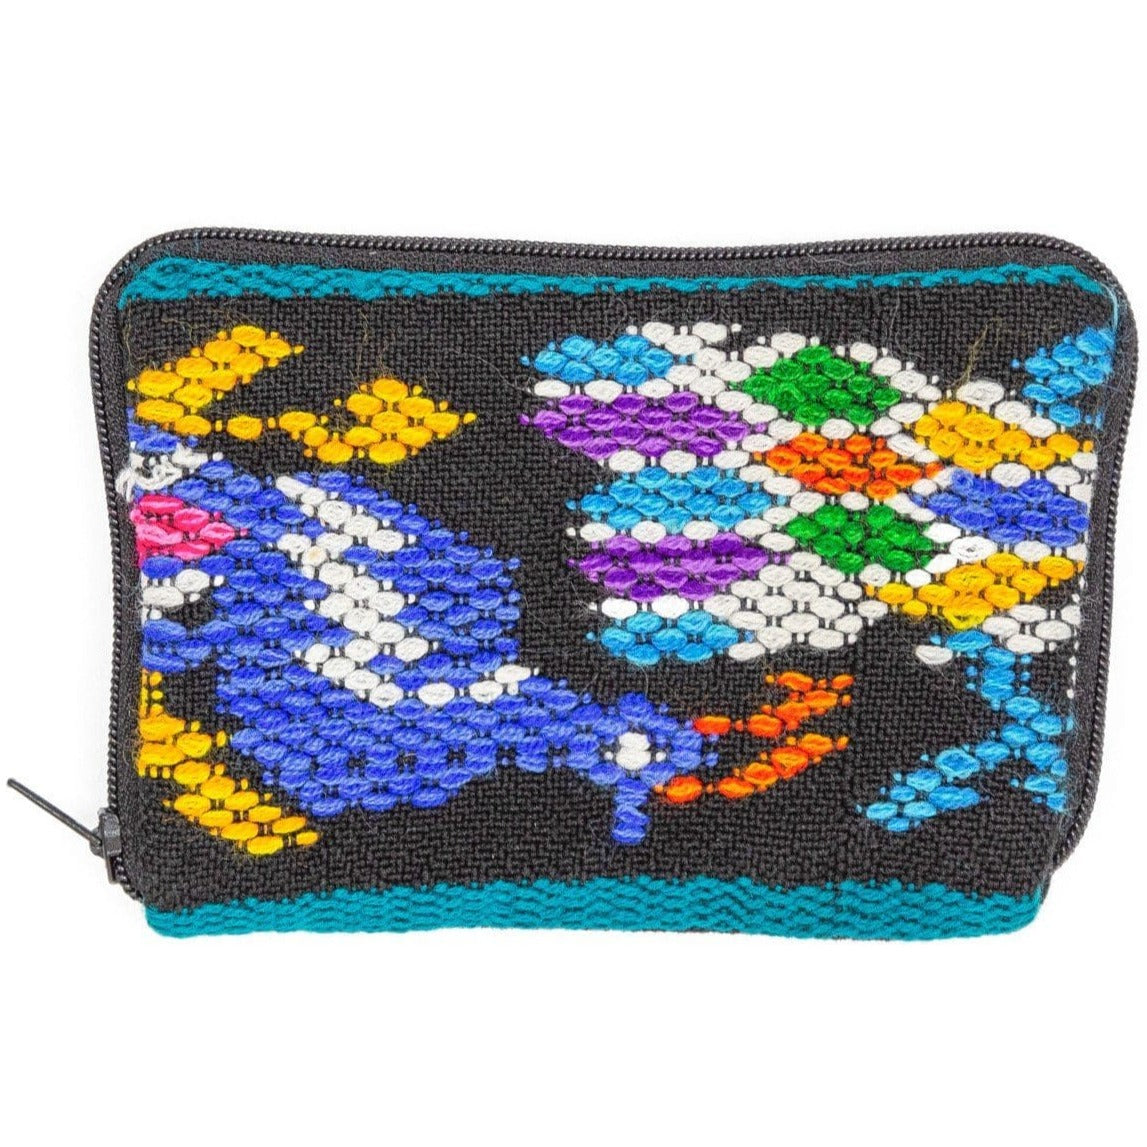 Guatemalan 2 Pocket Coin Purse